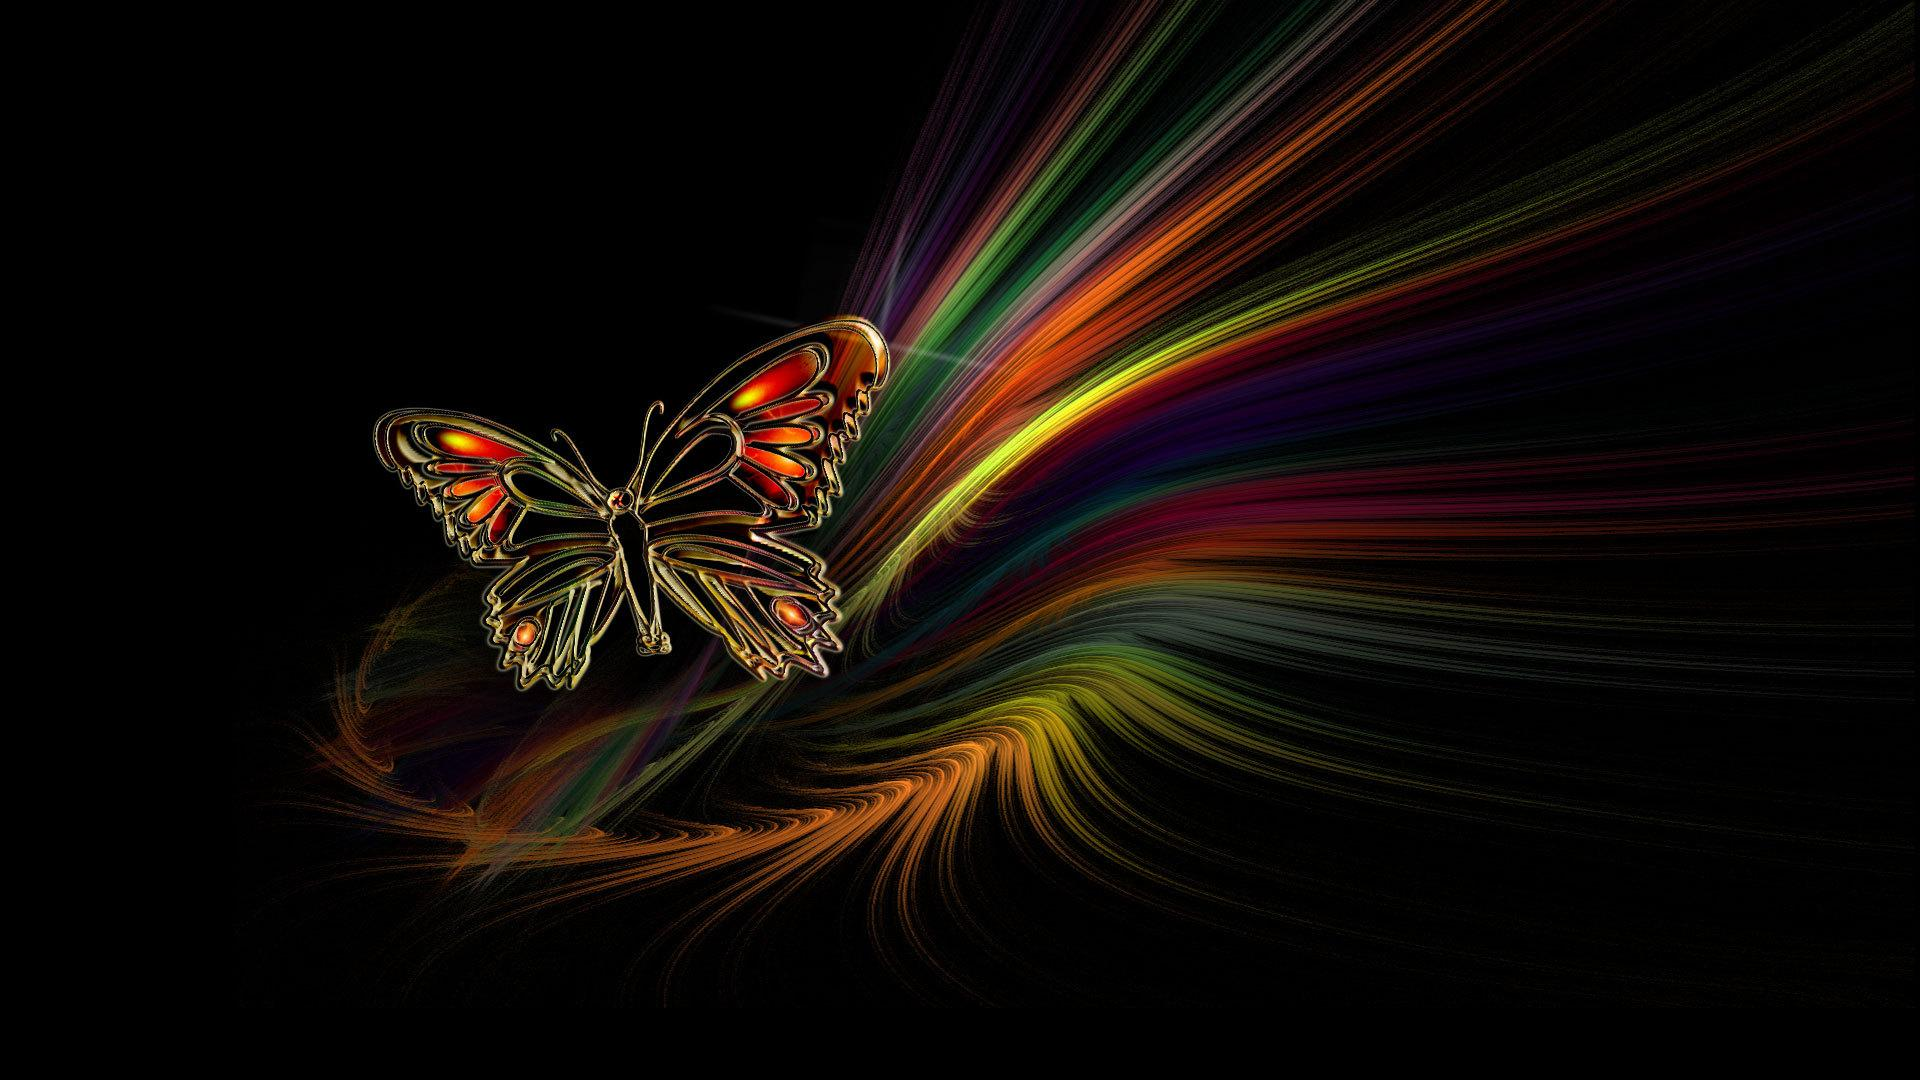 butterfly wallpaper 8884 1920x1080 px hdwallsource com butterfly wallpaper live android apps